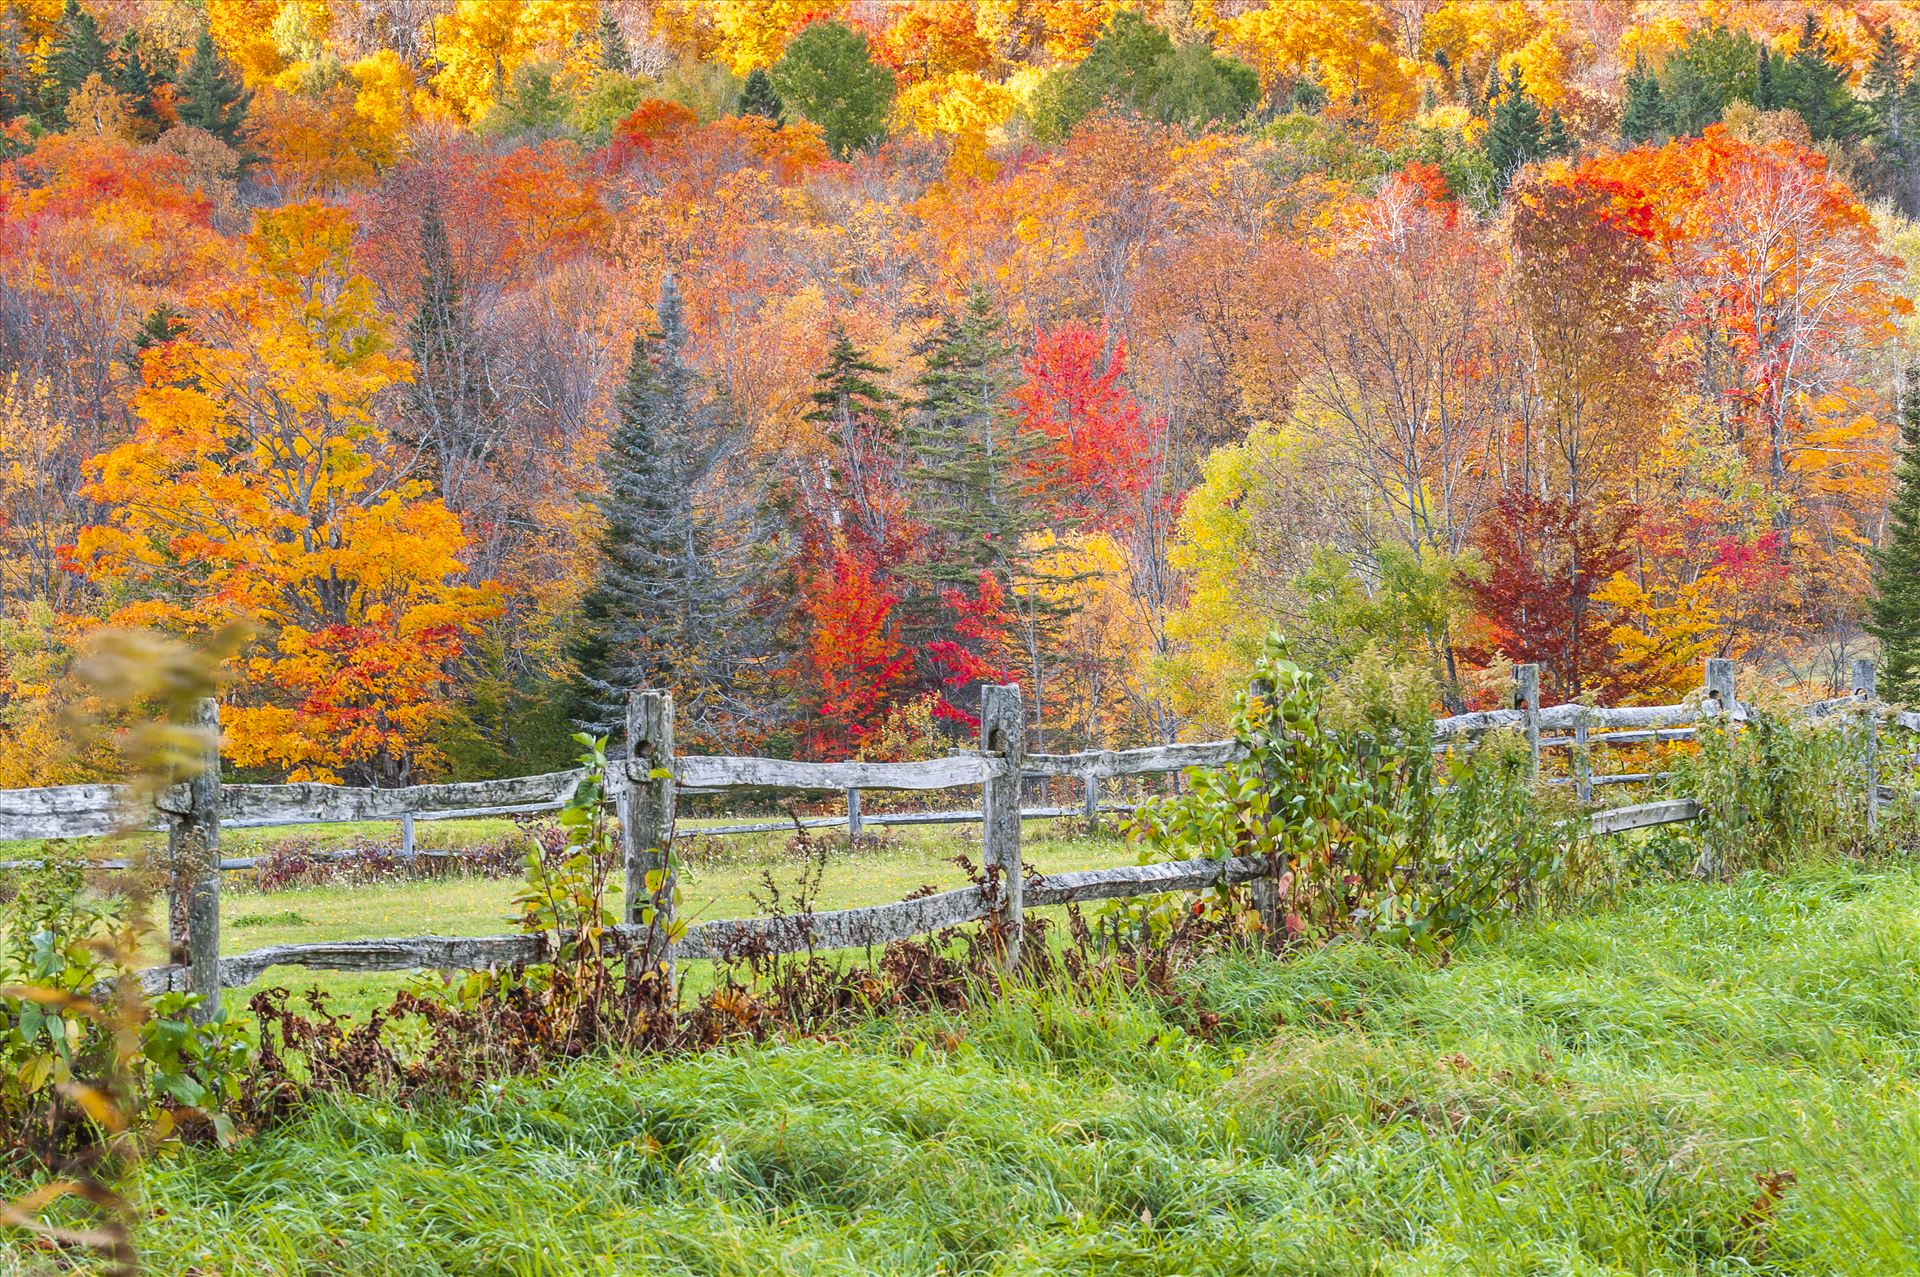 Fence in Foliage - Vibrant Colors of Autumn in Vermont by Buckmaster